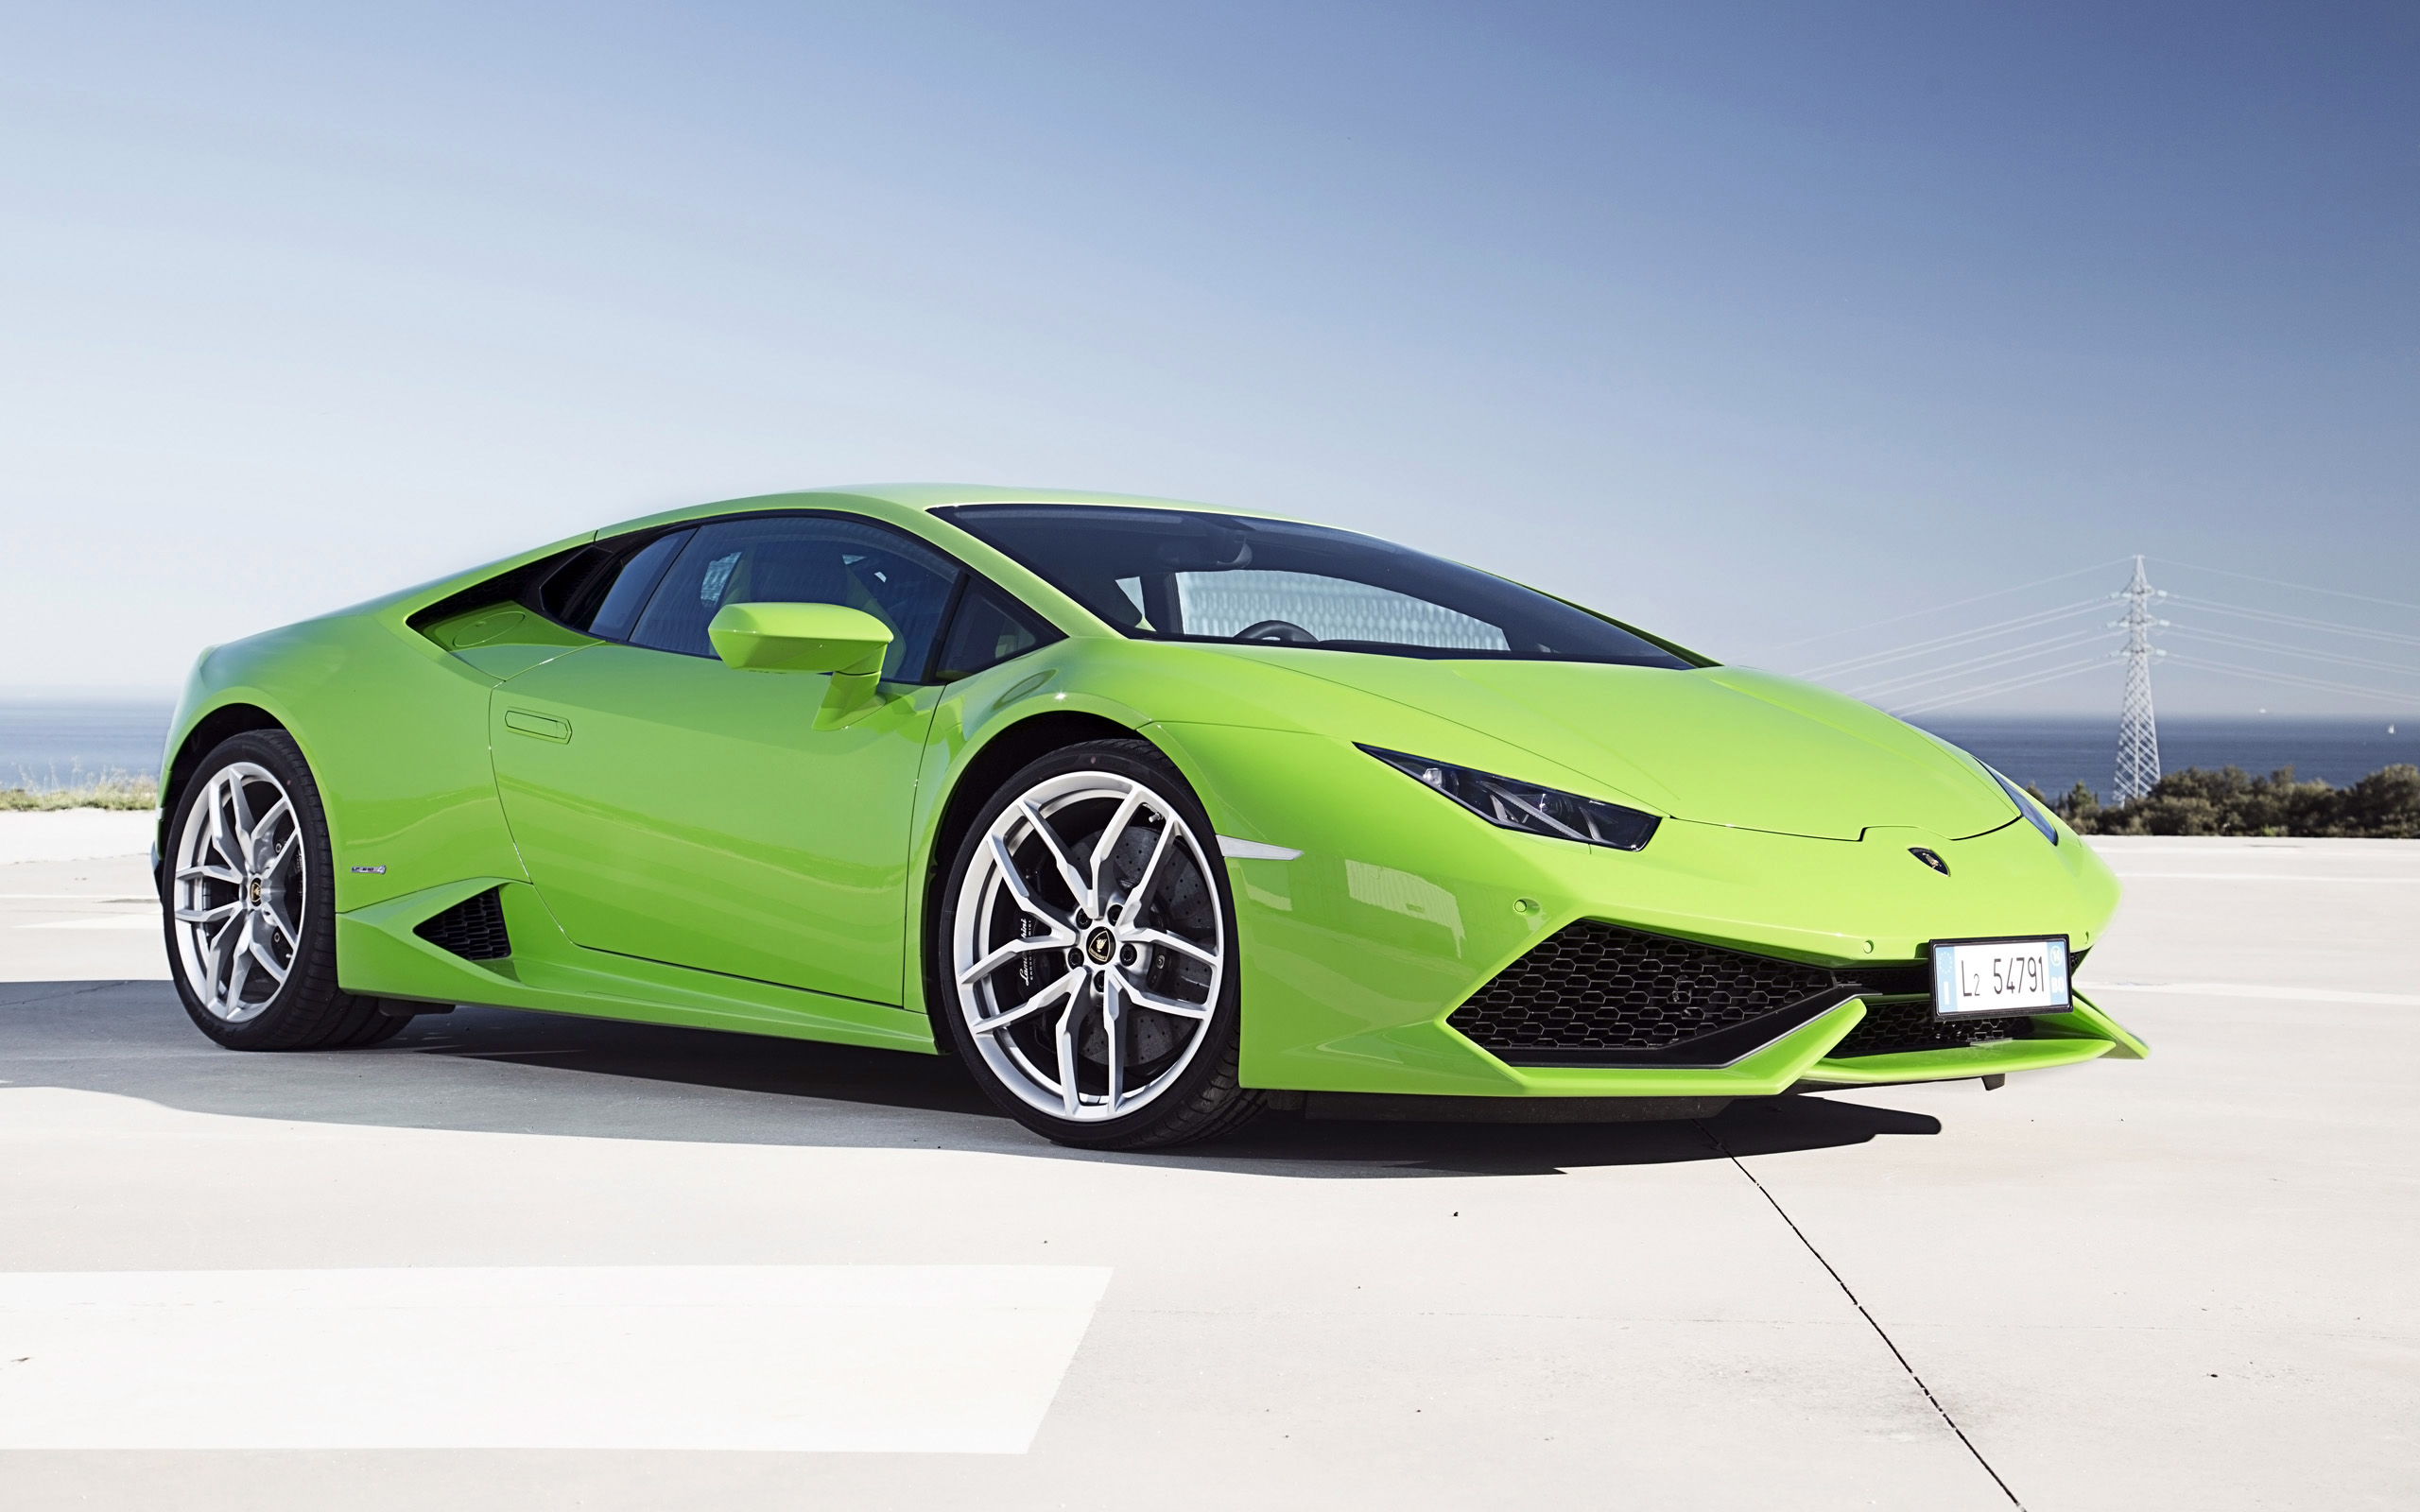 Green Lamborghini HD Wallpaper